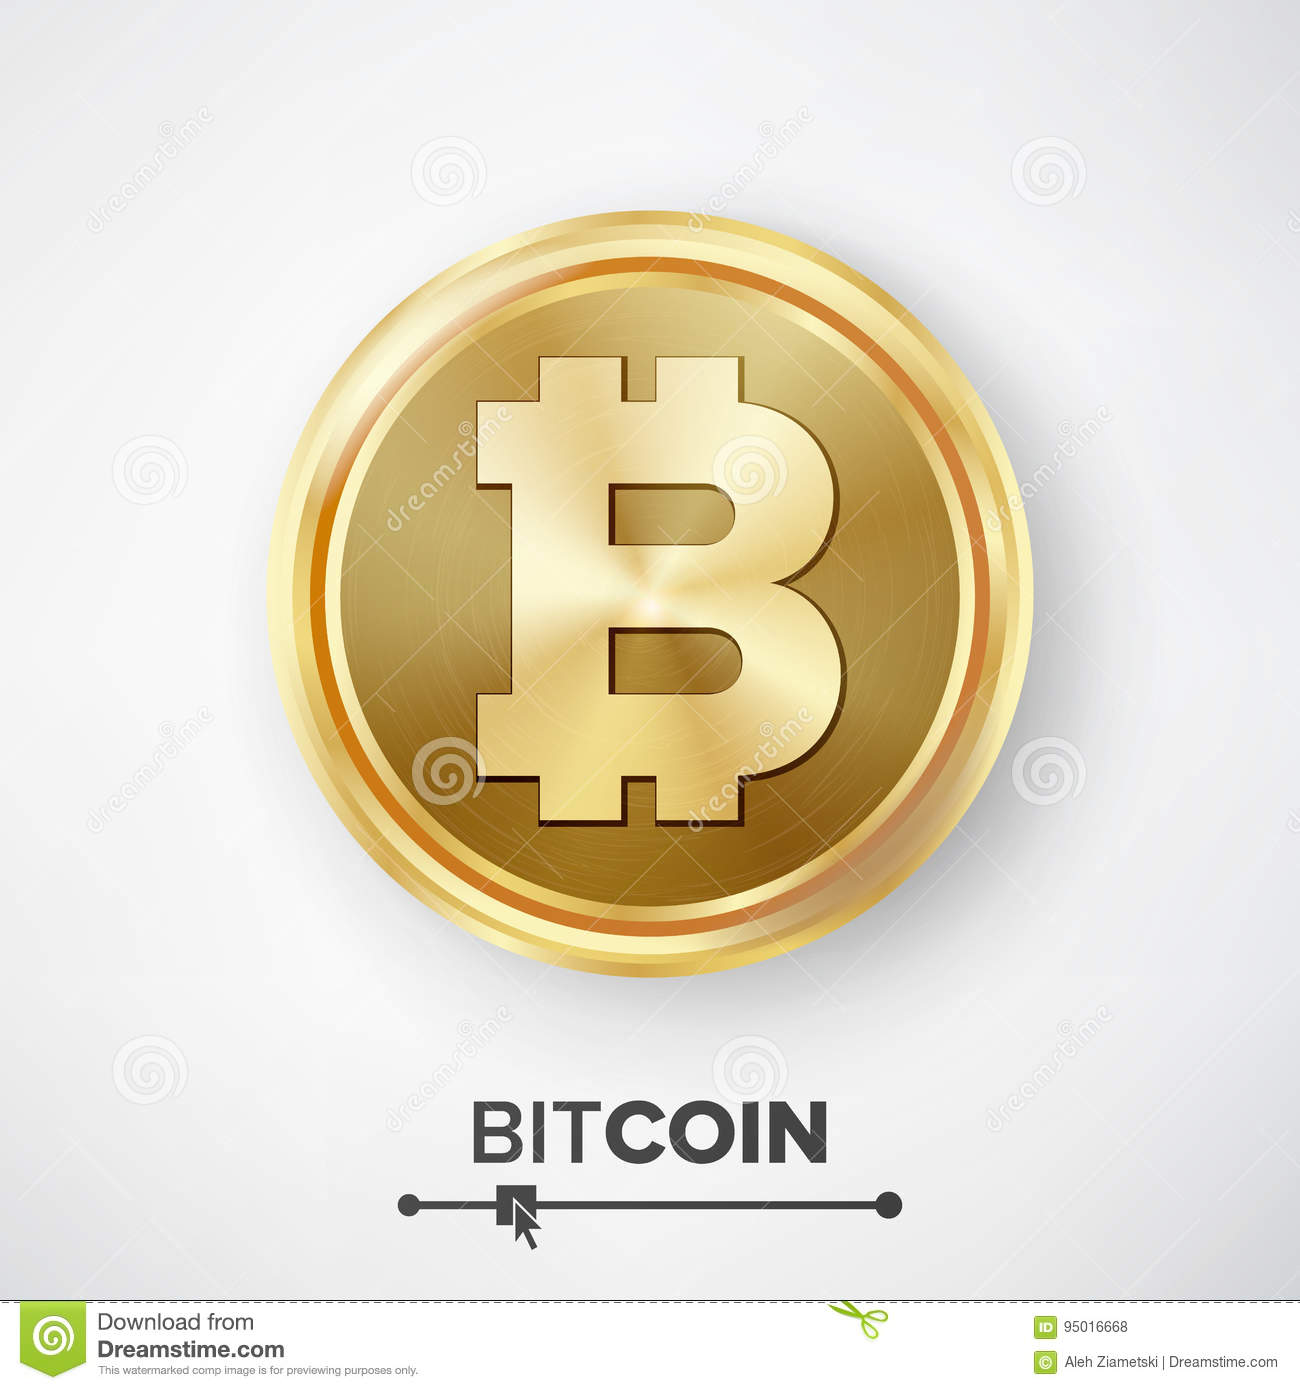 Bitcoin Gold Coin Vector Realistic Crypto Currency Money And Finance Sign Illustration Digital